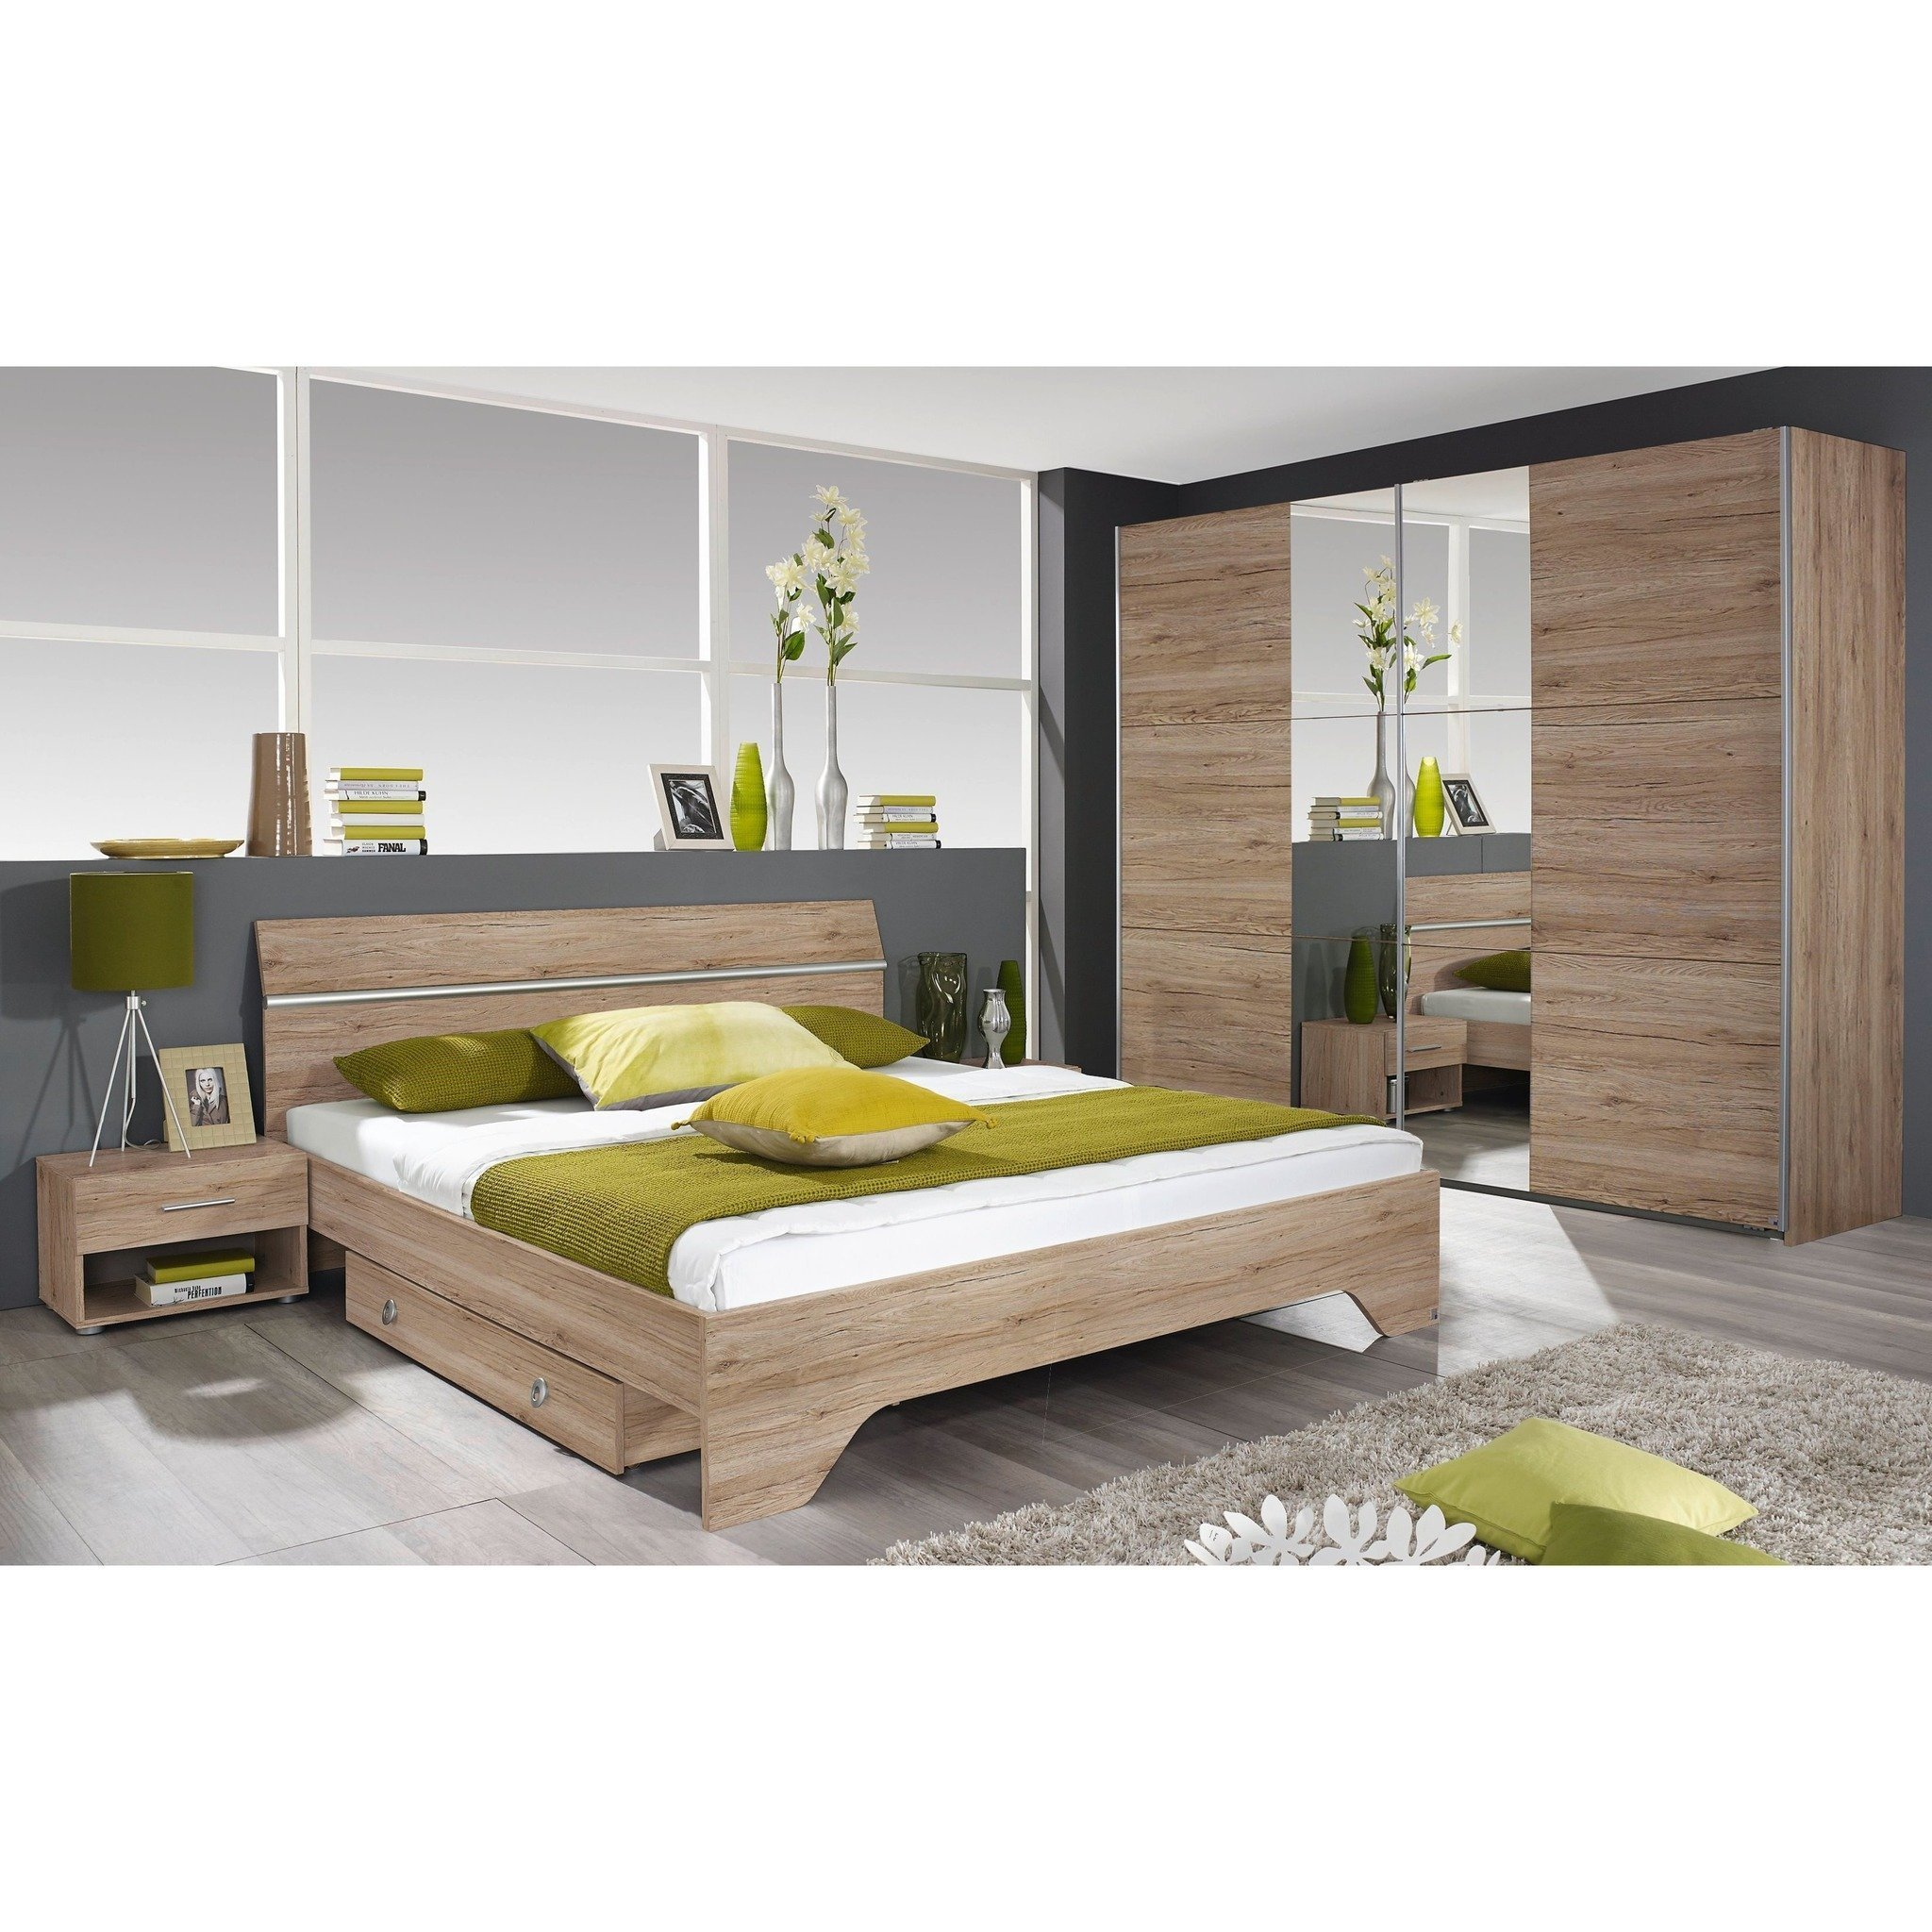 Best Rauch Fellbach Range German Made Bedroom Furniture San With Pictures